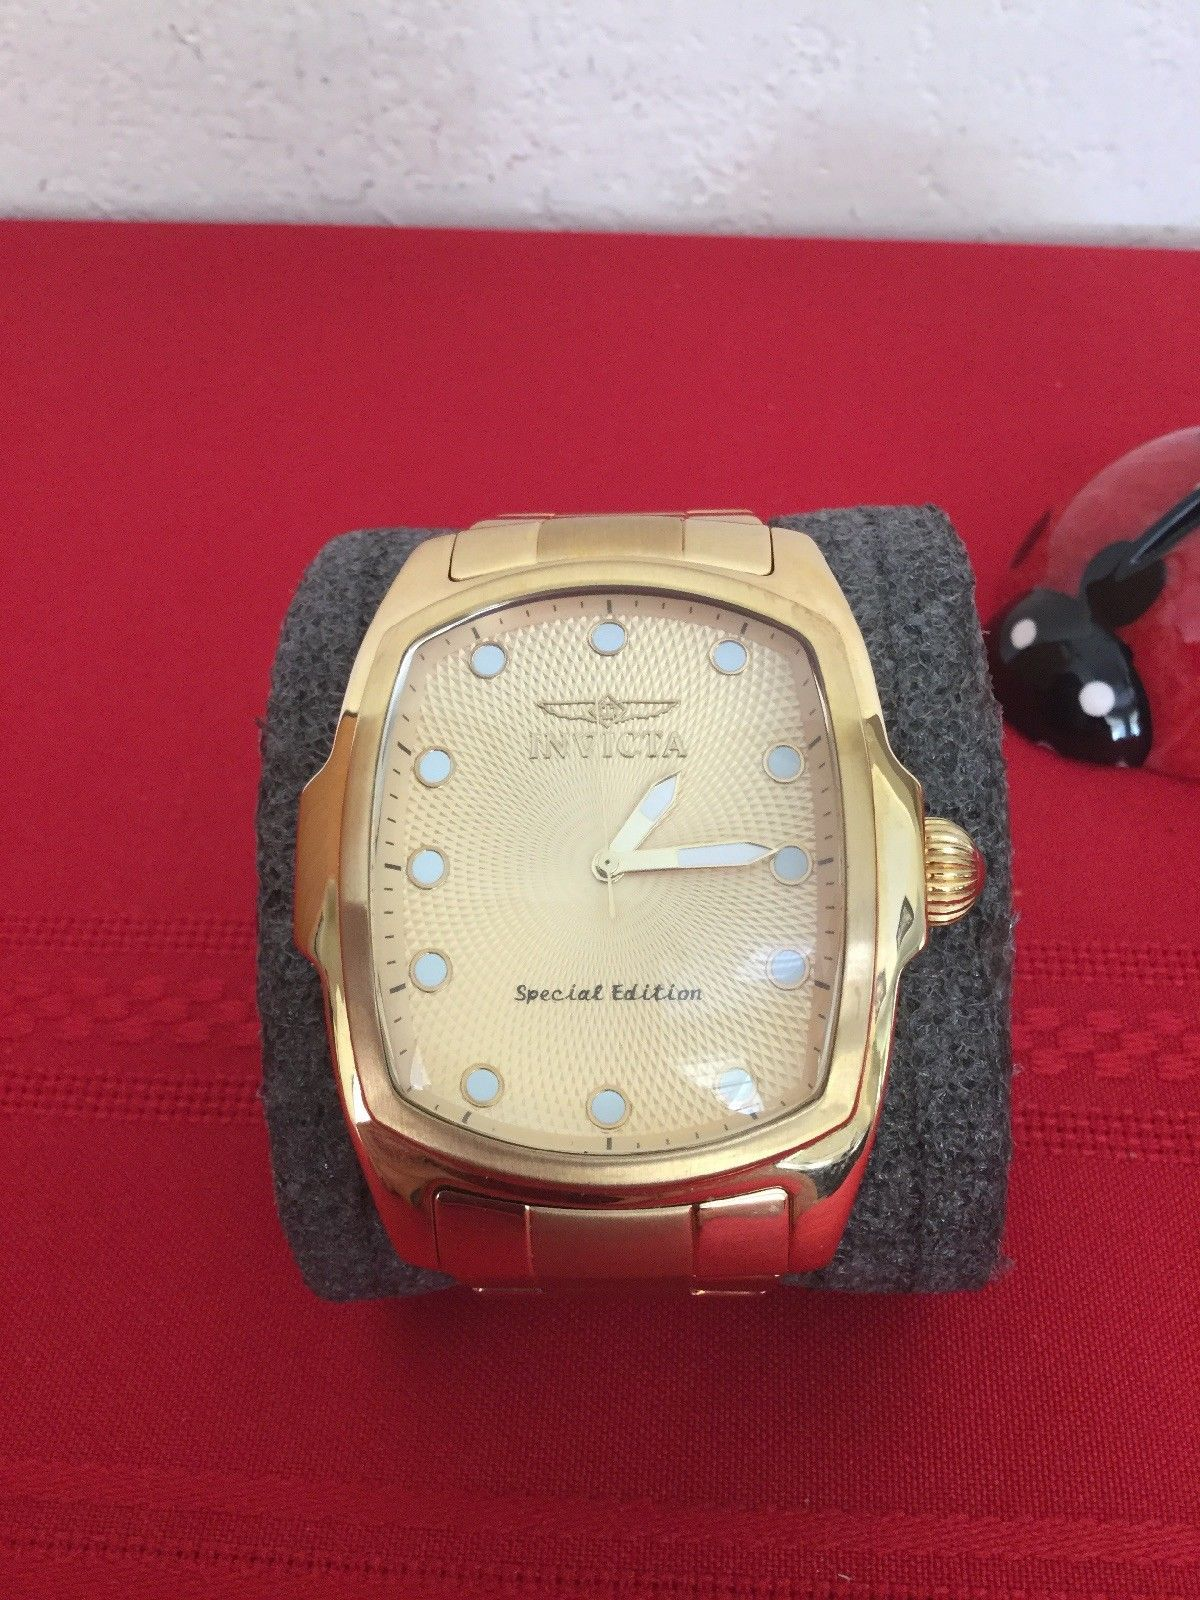 Invicta Men's Lupah Watch Gold 15854 Special Edition Wristwatch - $100.00